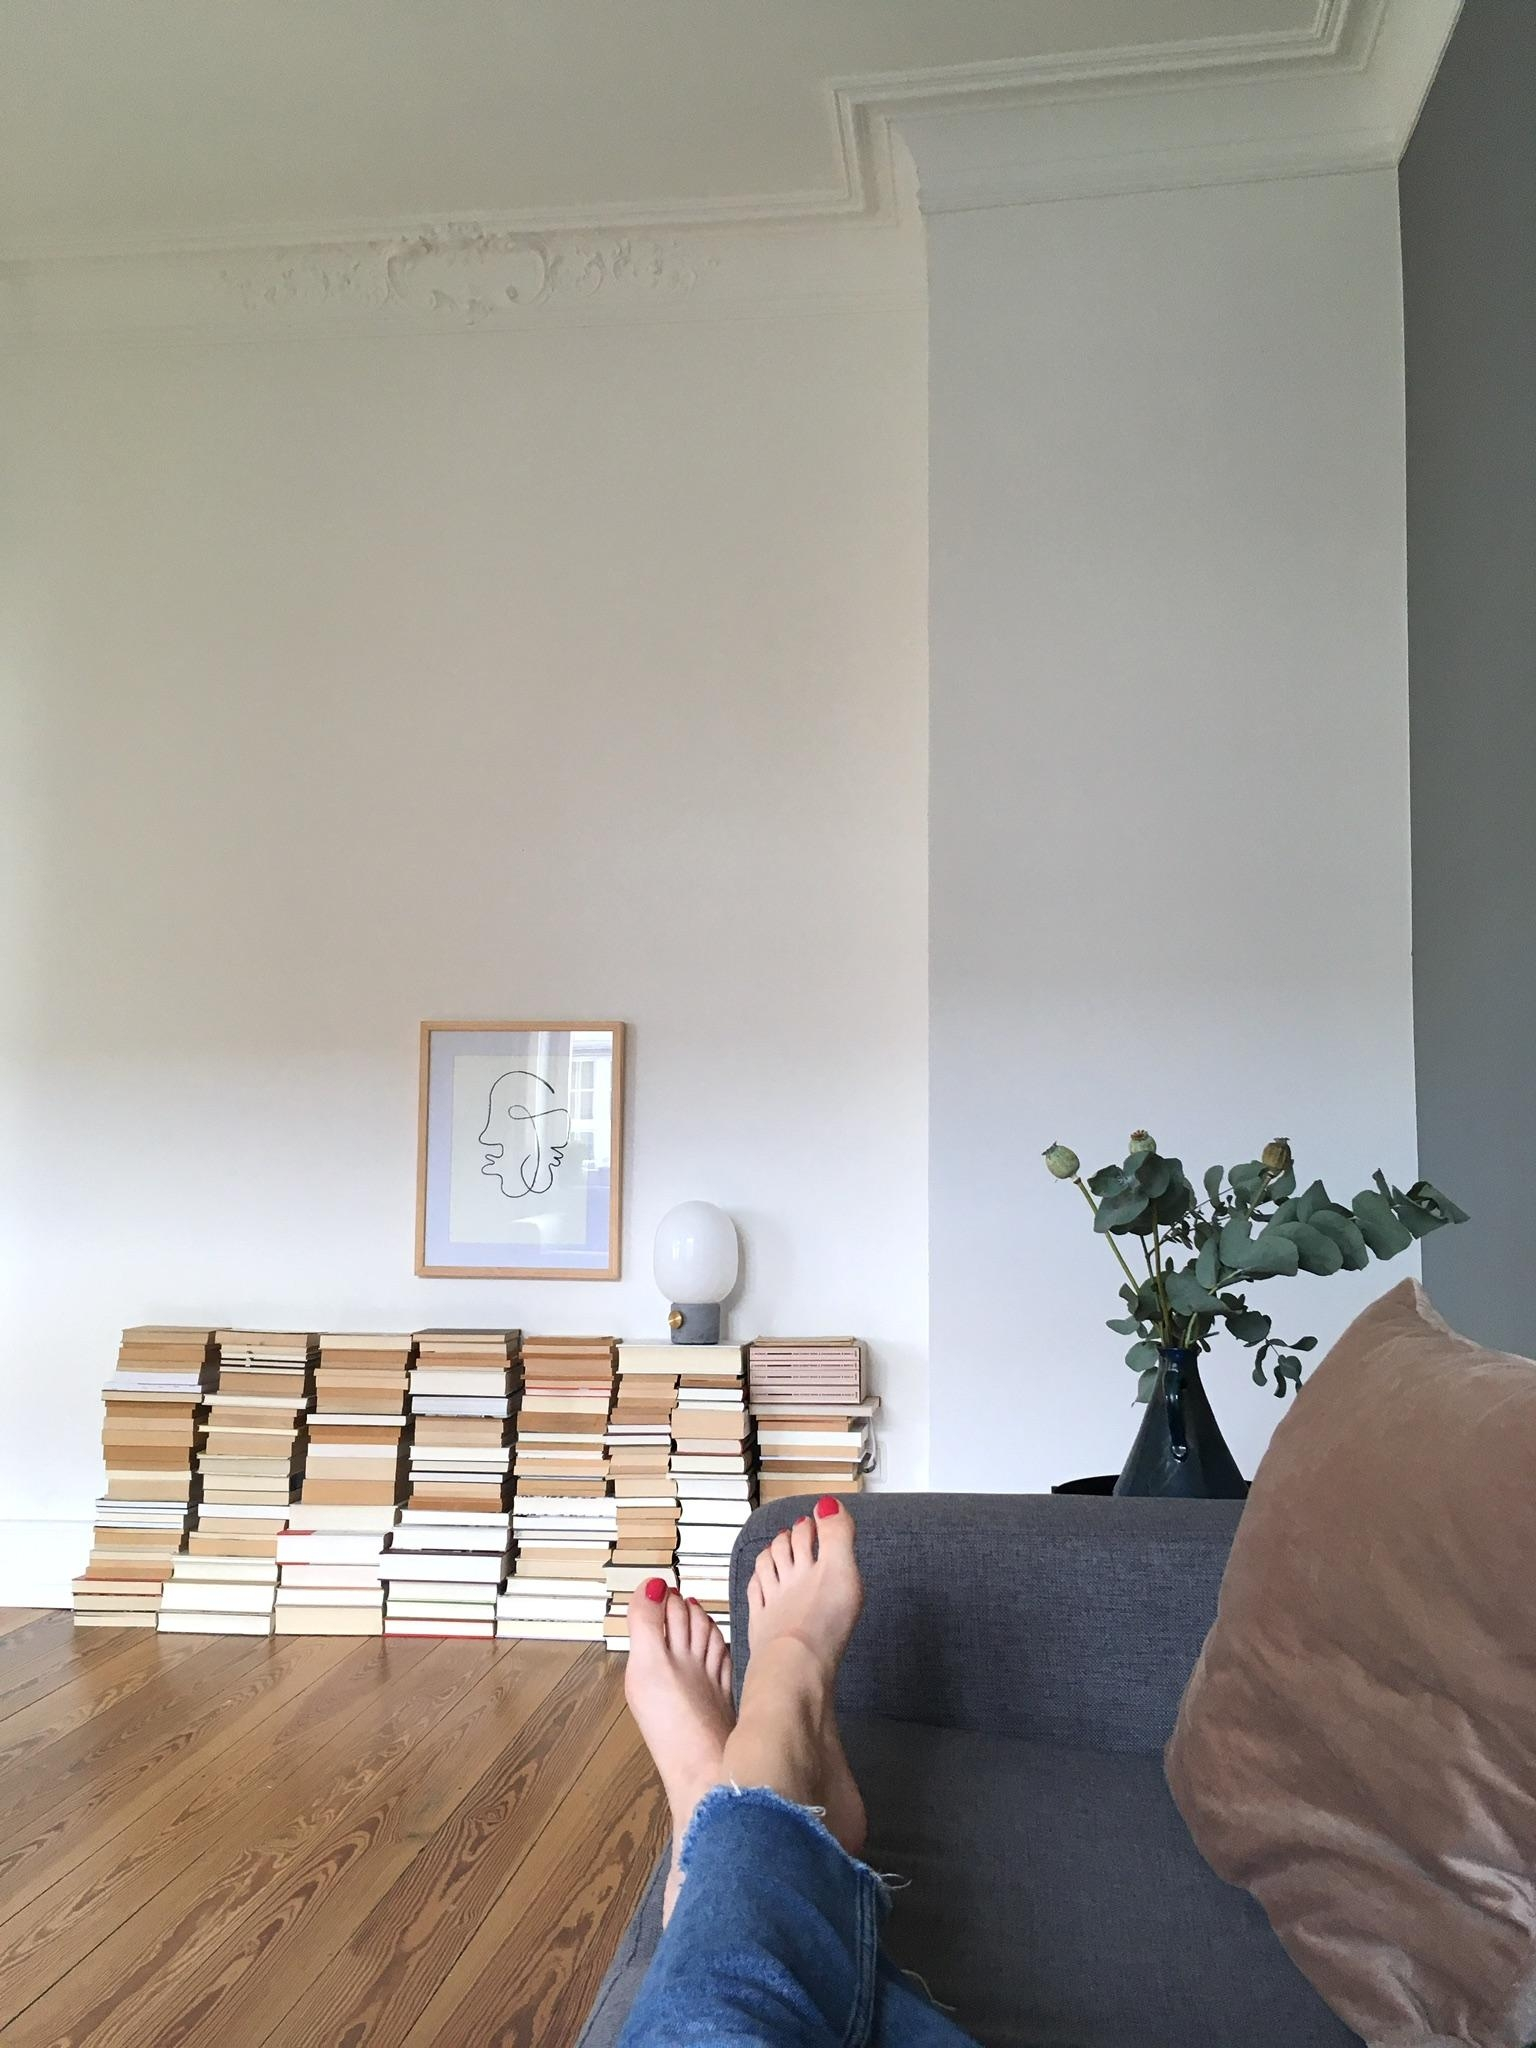 from where i chill. #vacay #altbau #altbauwohnung #bücherwand #bücherregal #living #sofa #couch